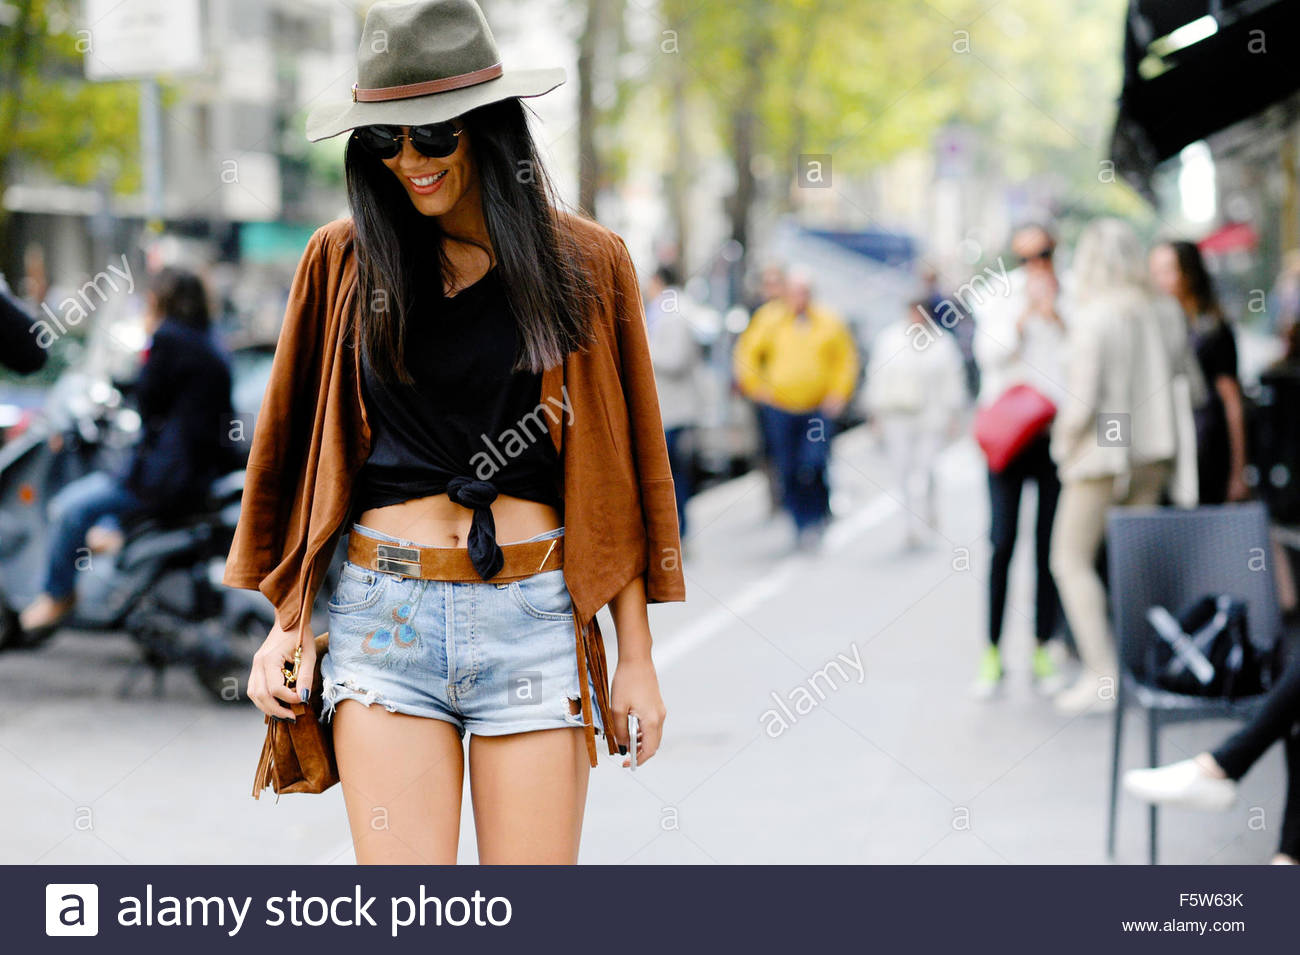 On Viale Piave, after Dolce & Gabbana ready to wear Spring Summer 2016. Milan Fashion week 2015. - Stock Image